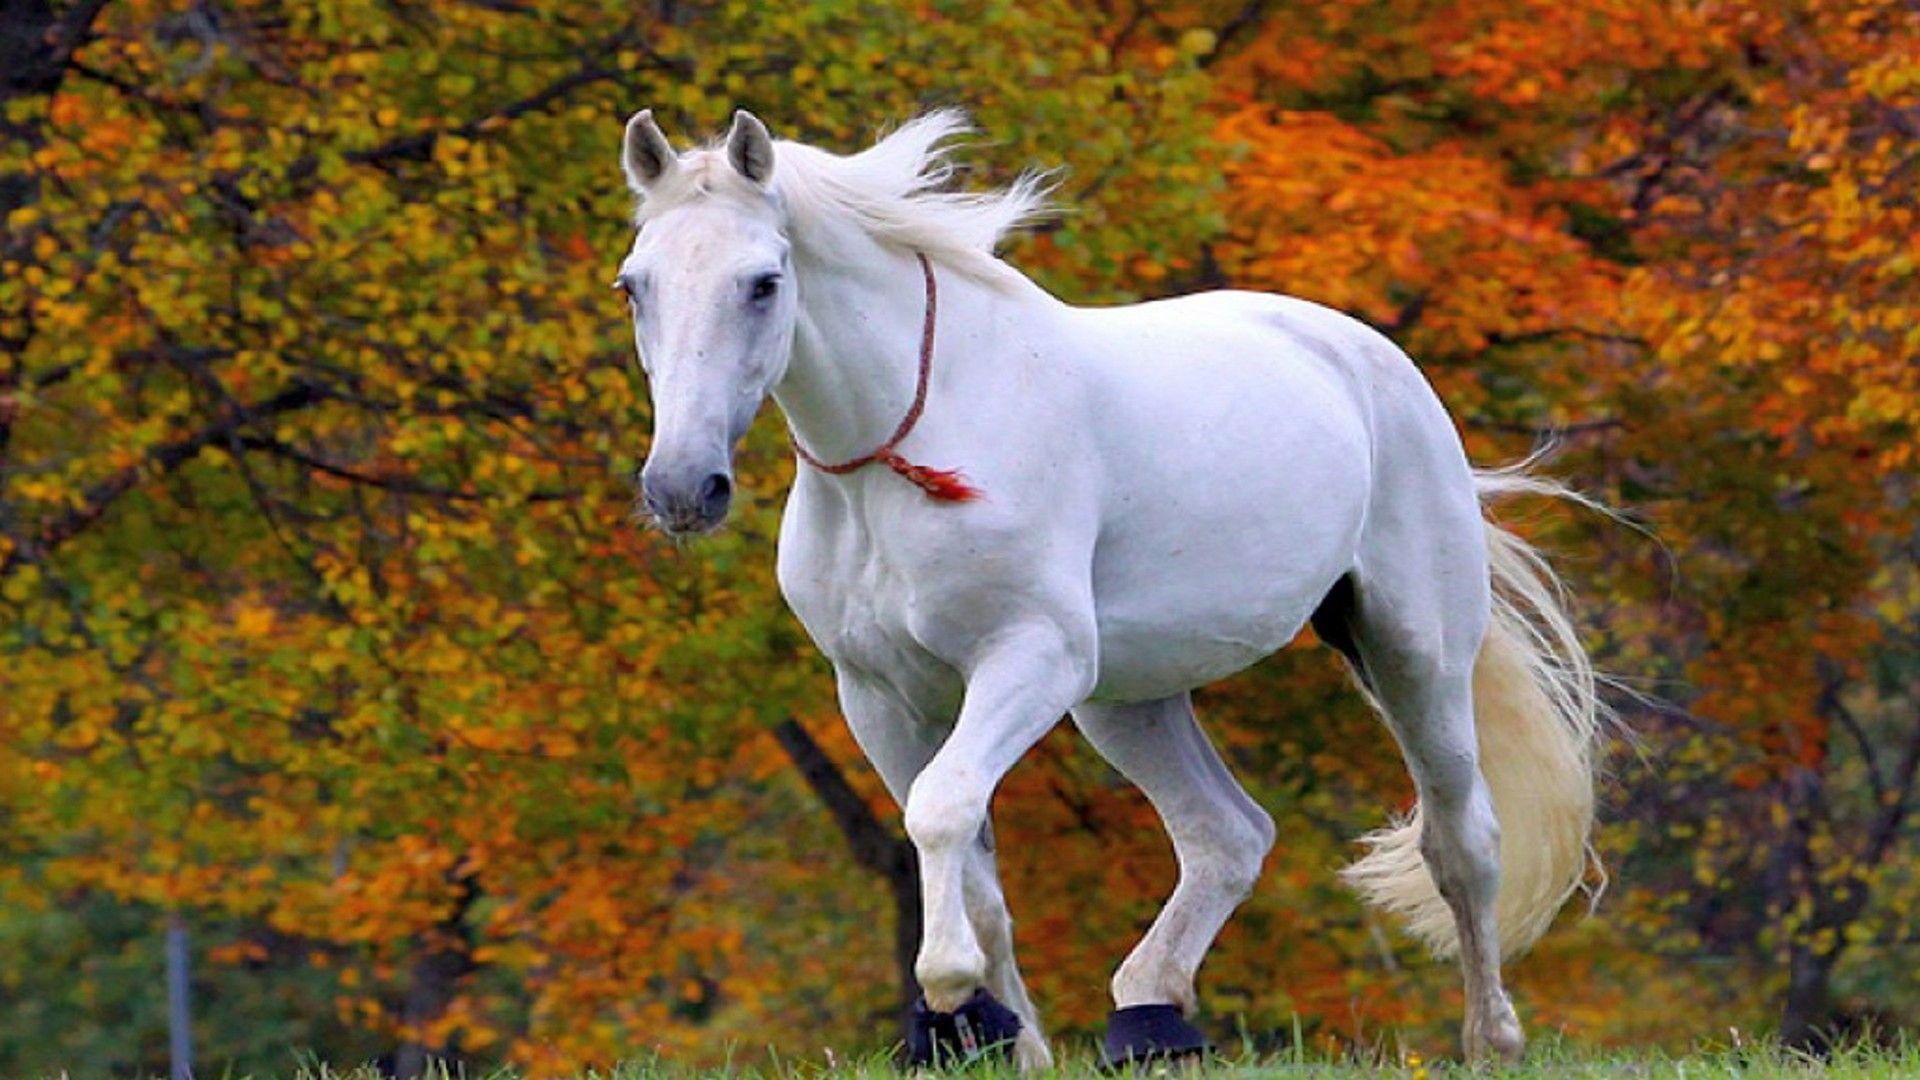 Cute white horse wallpapers